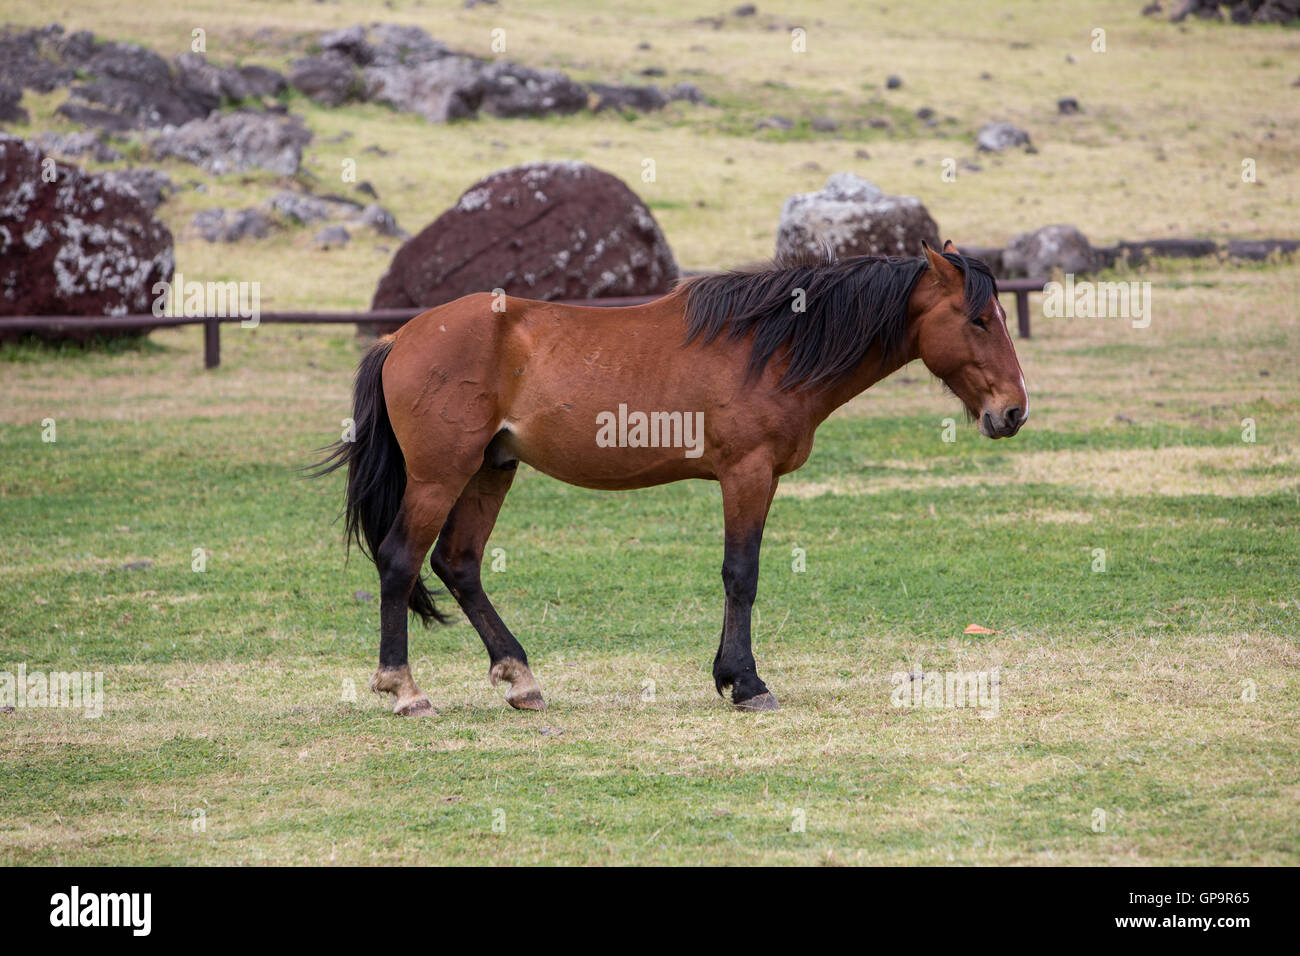 A wild horse on Easter Island - Stock Image